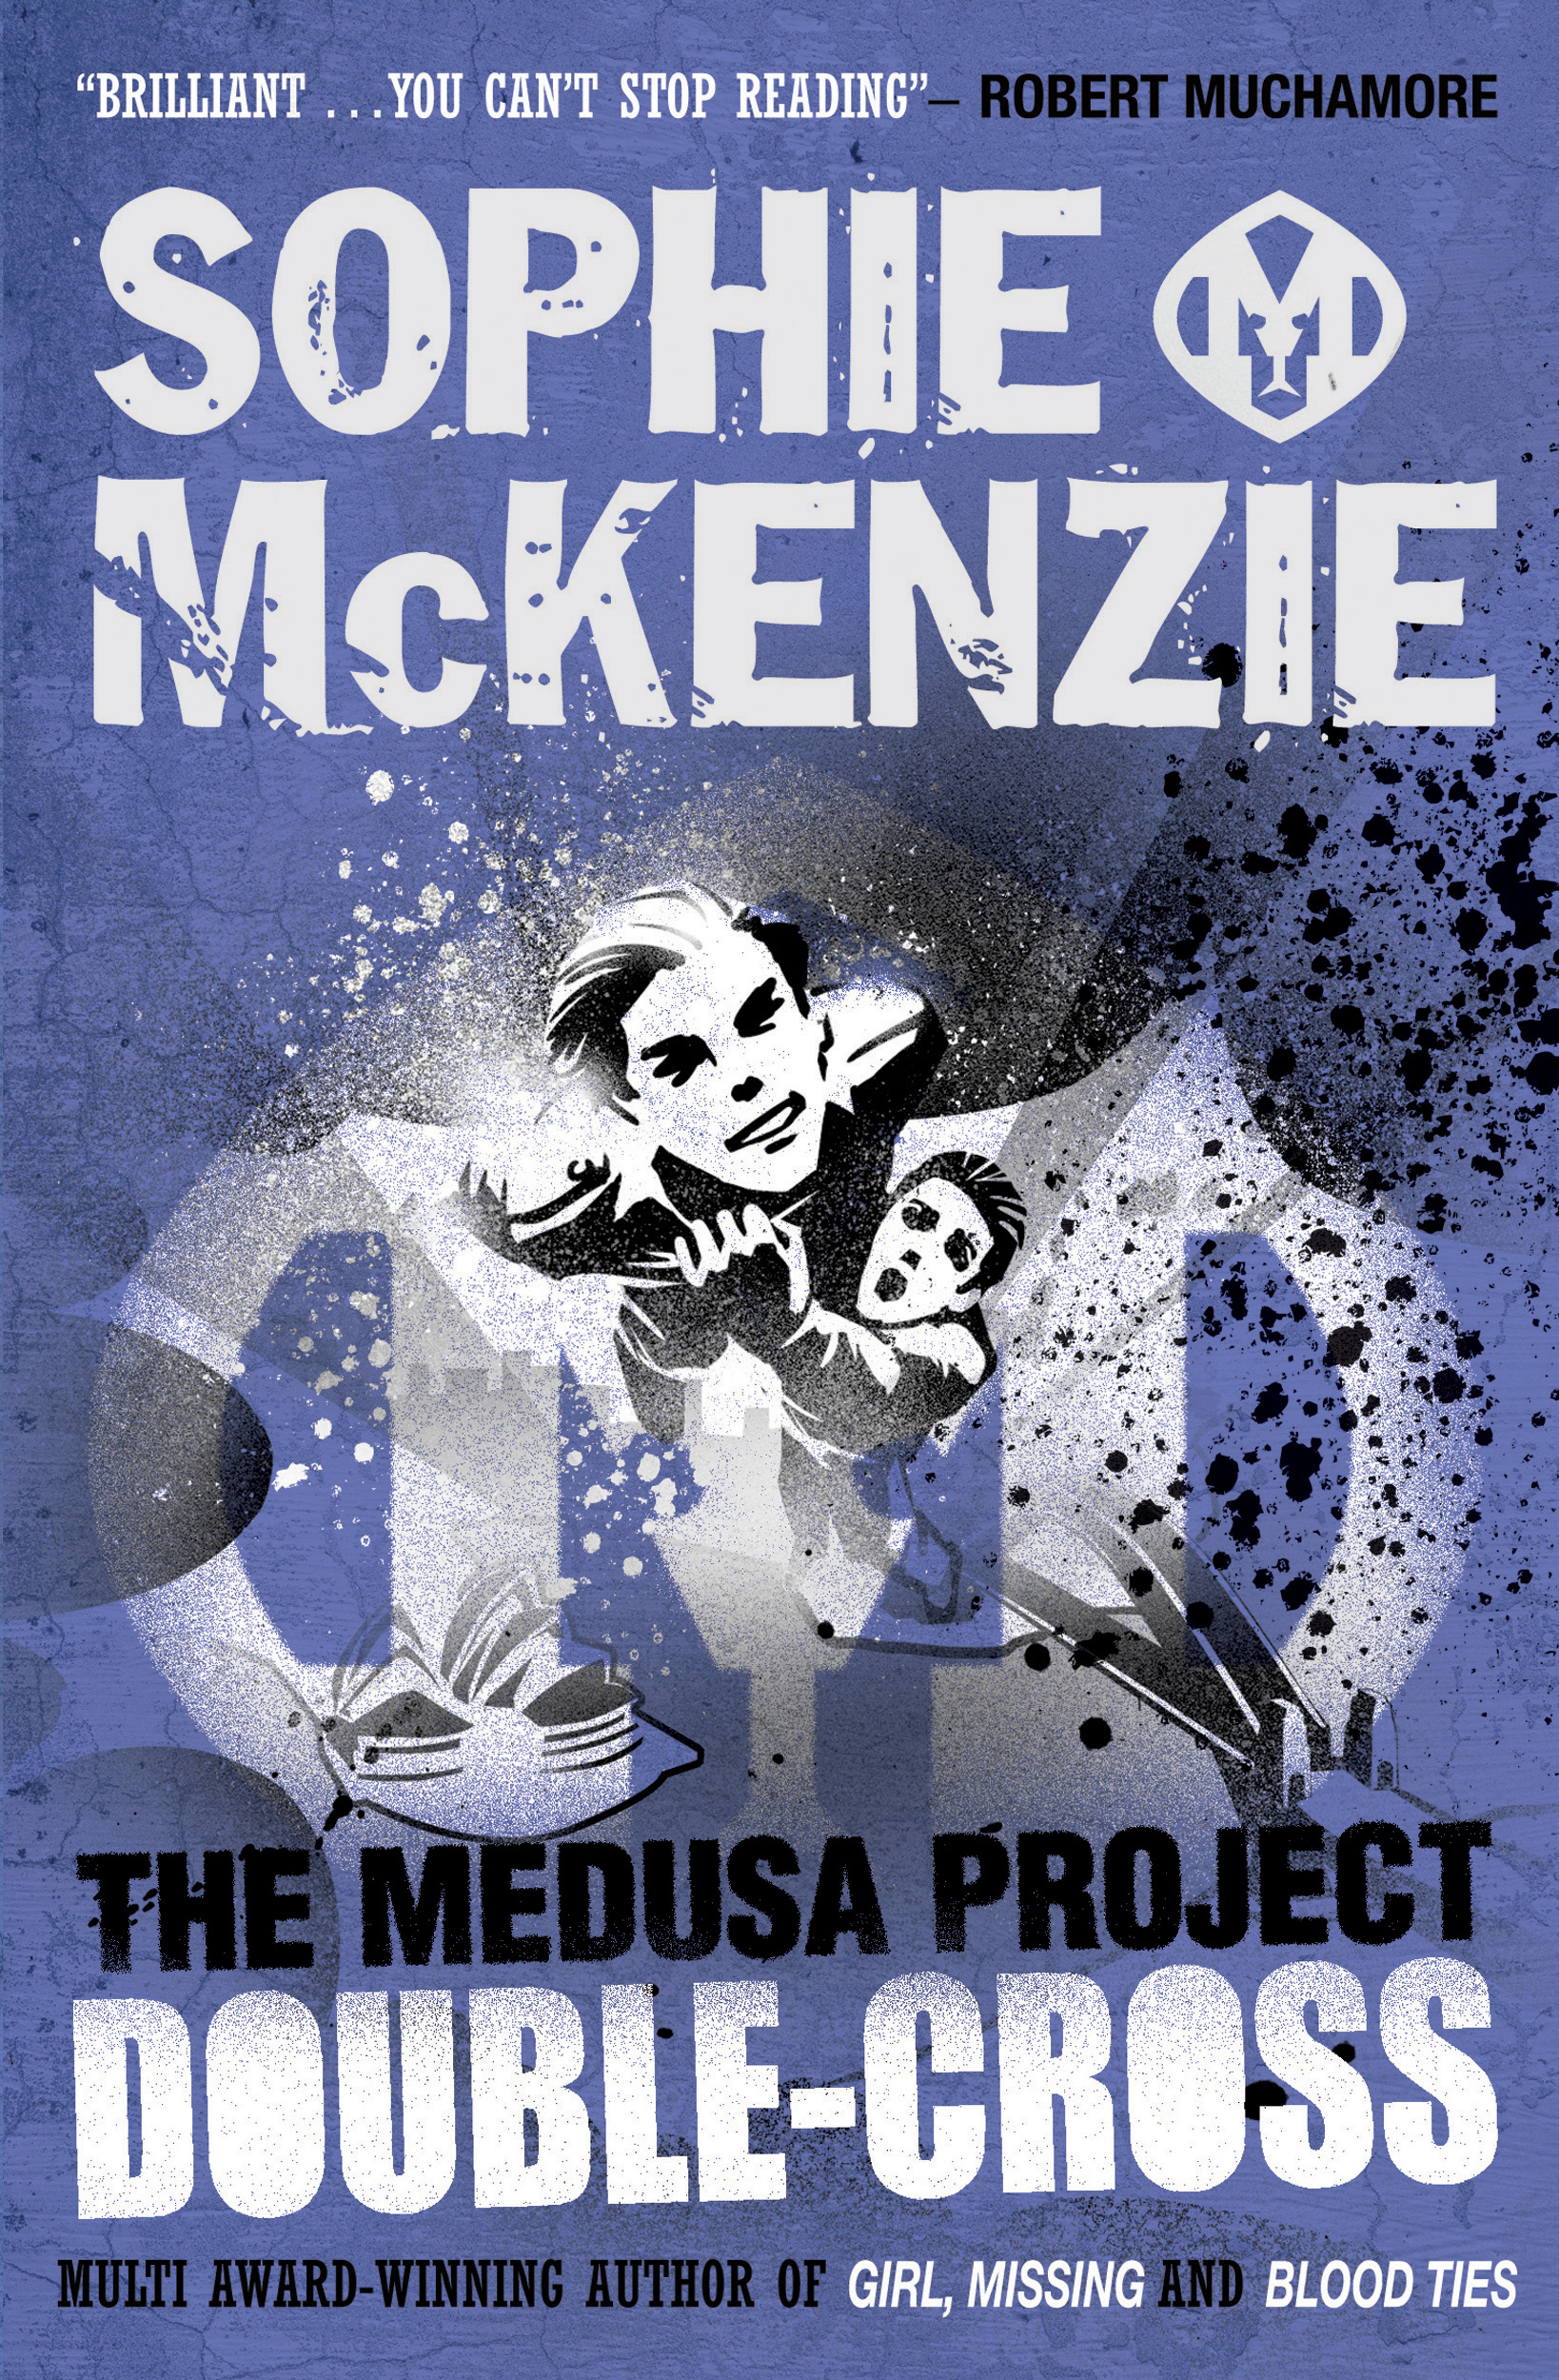 The medusa project double cross book by sophie mckenzie cvr9780857070692 9780857070692 hr fandeluxe Choice Image